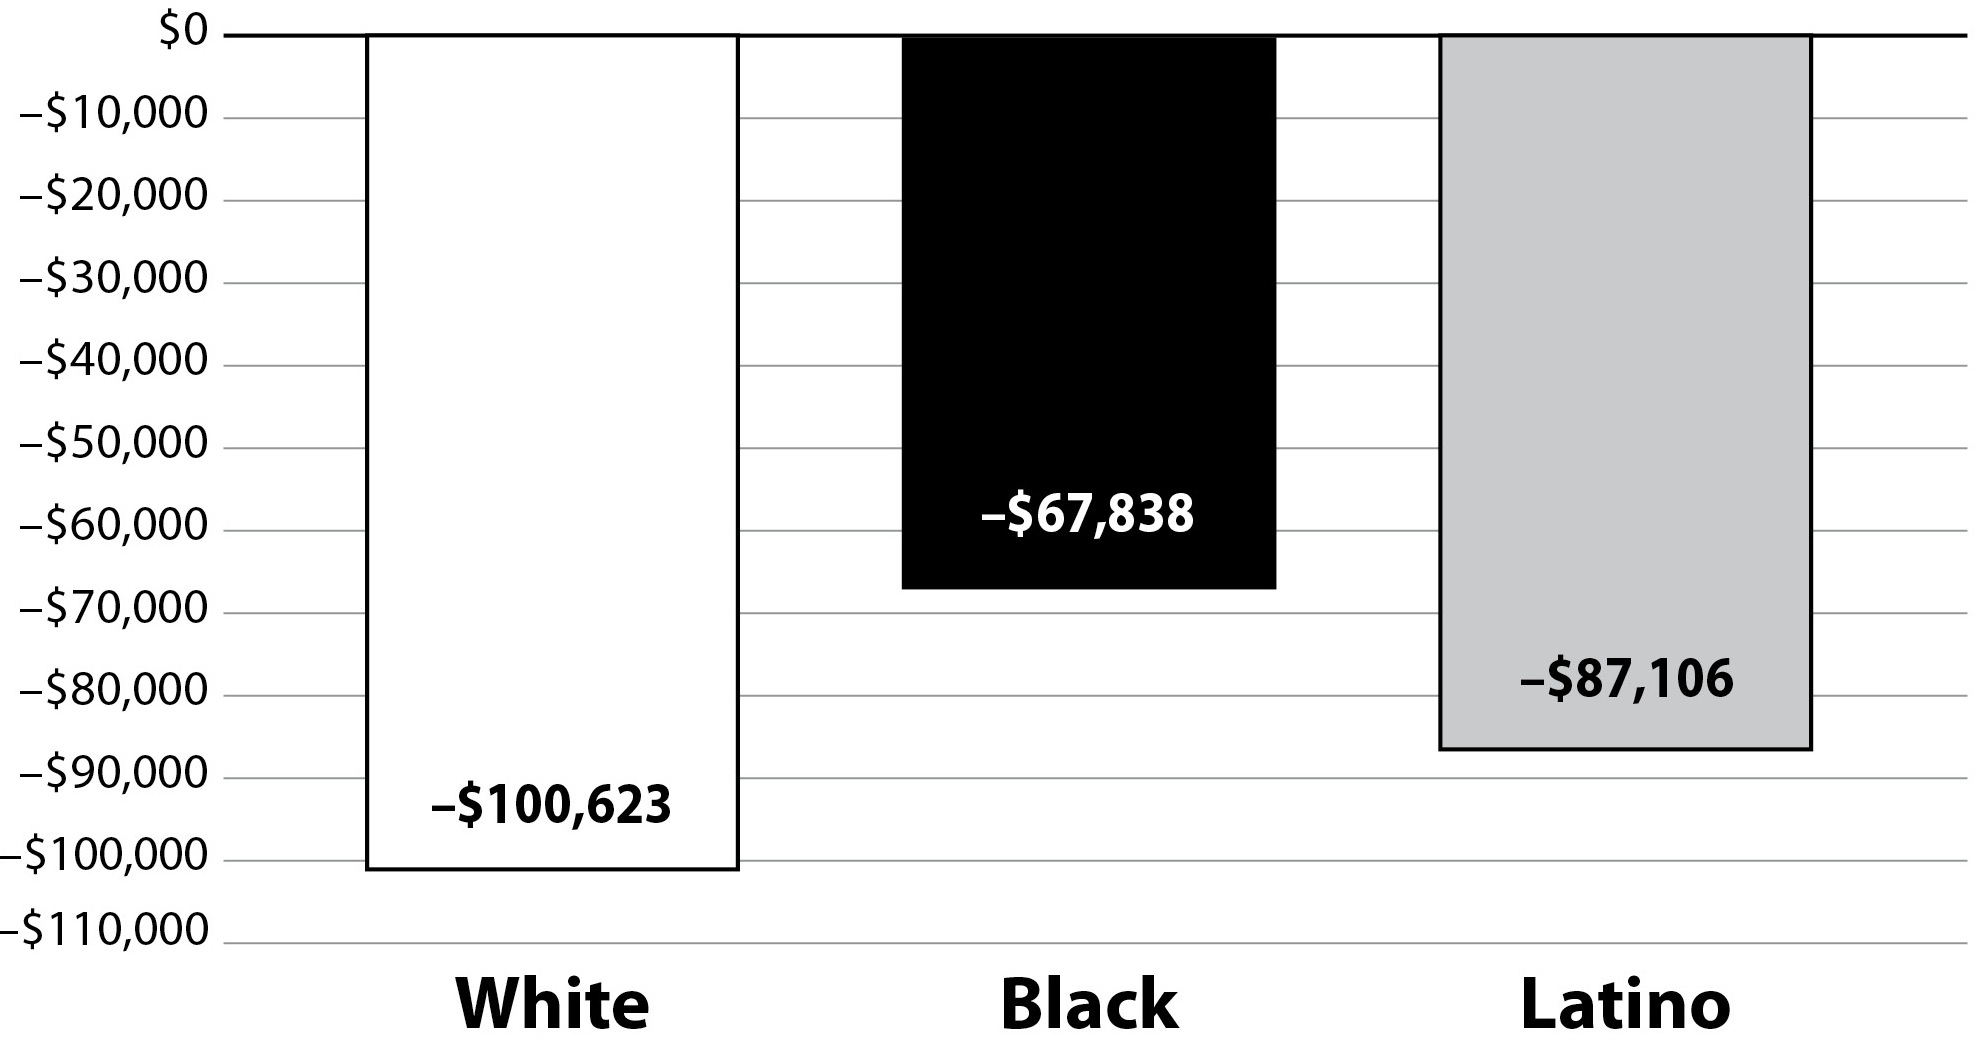 Avg_Debt_by_Race_2007.jpg